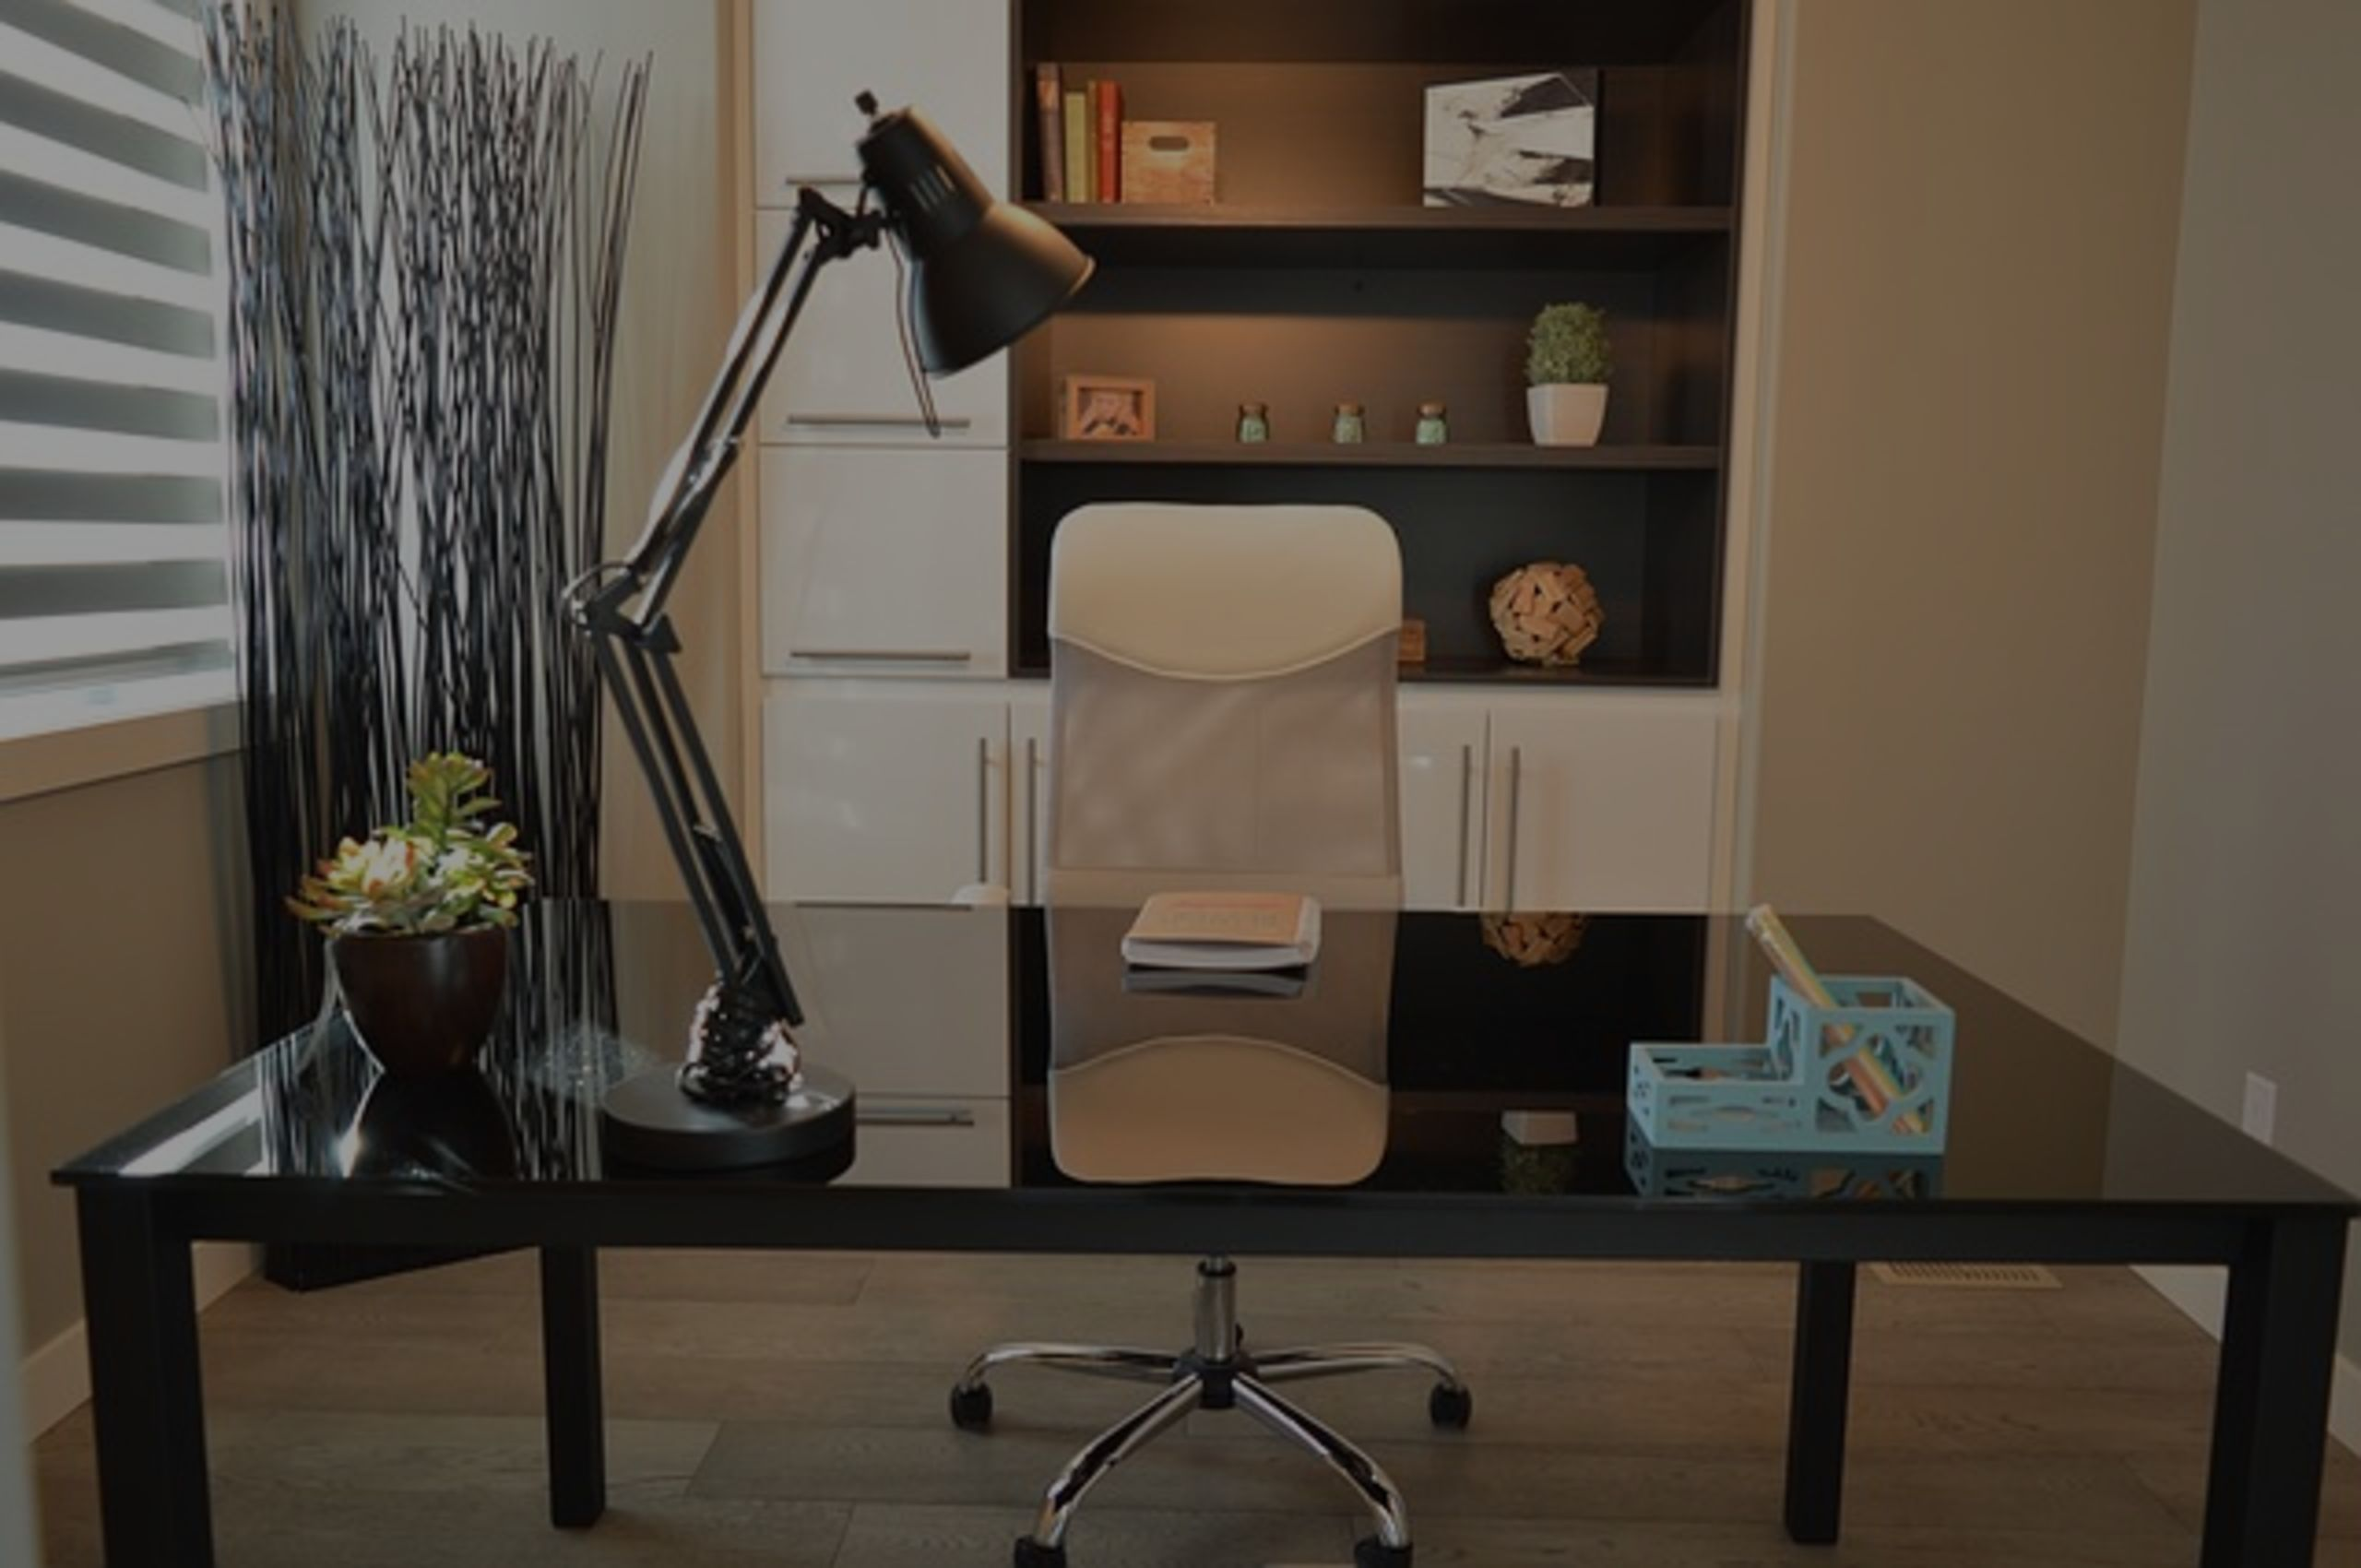 How to Maximize Small Spaces